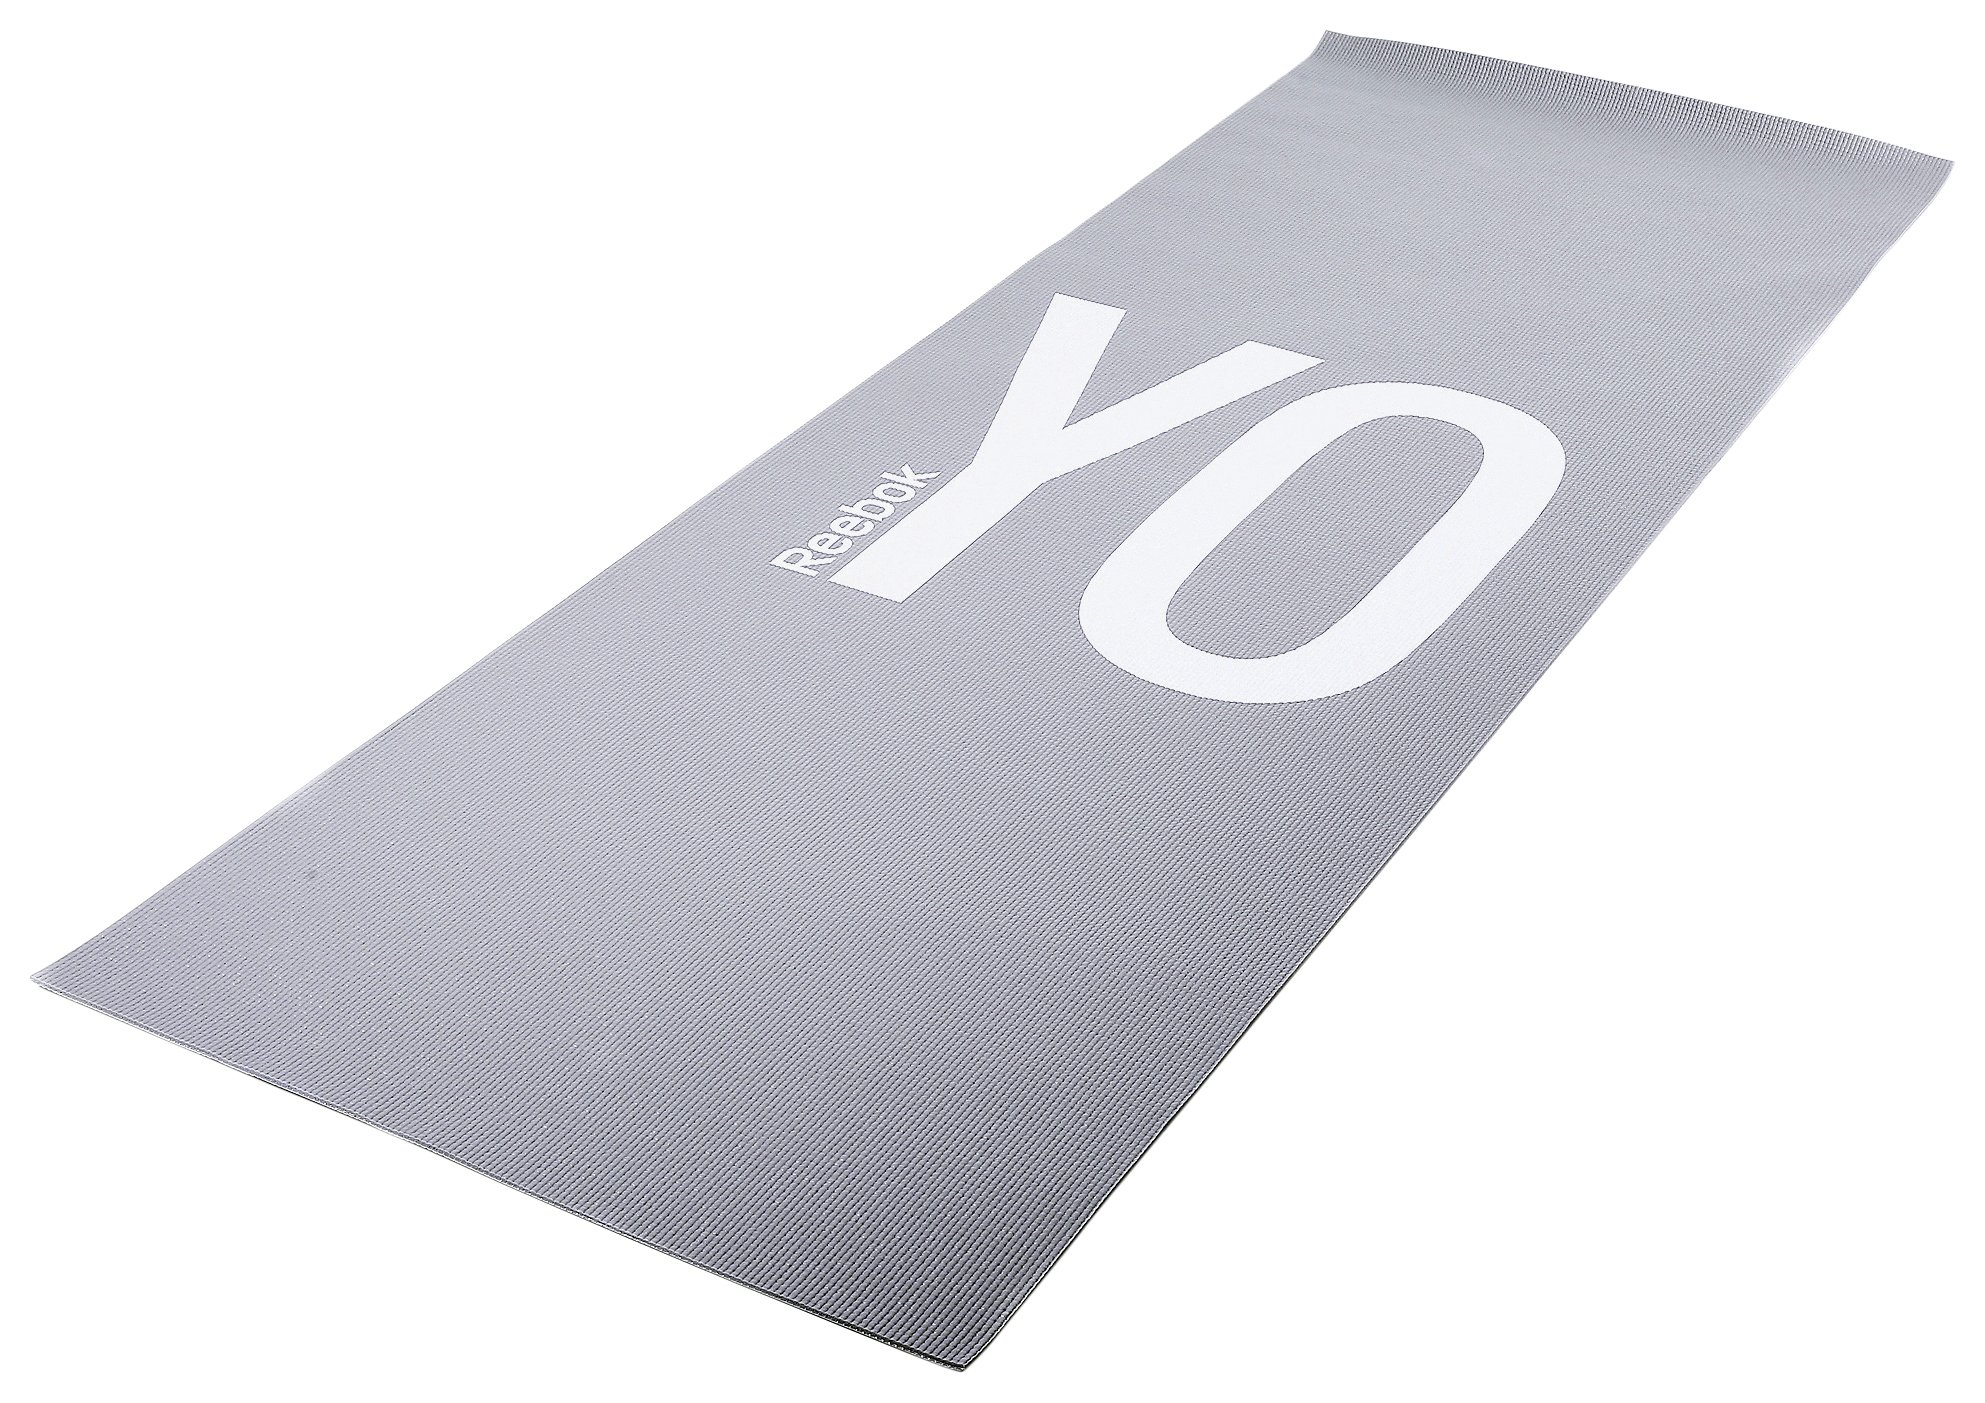 reebok-4mm-yoga-exercise-mat